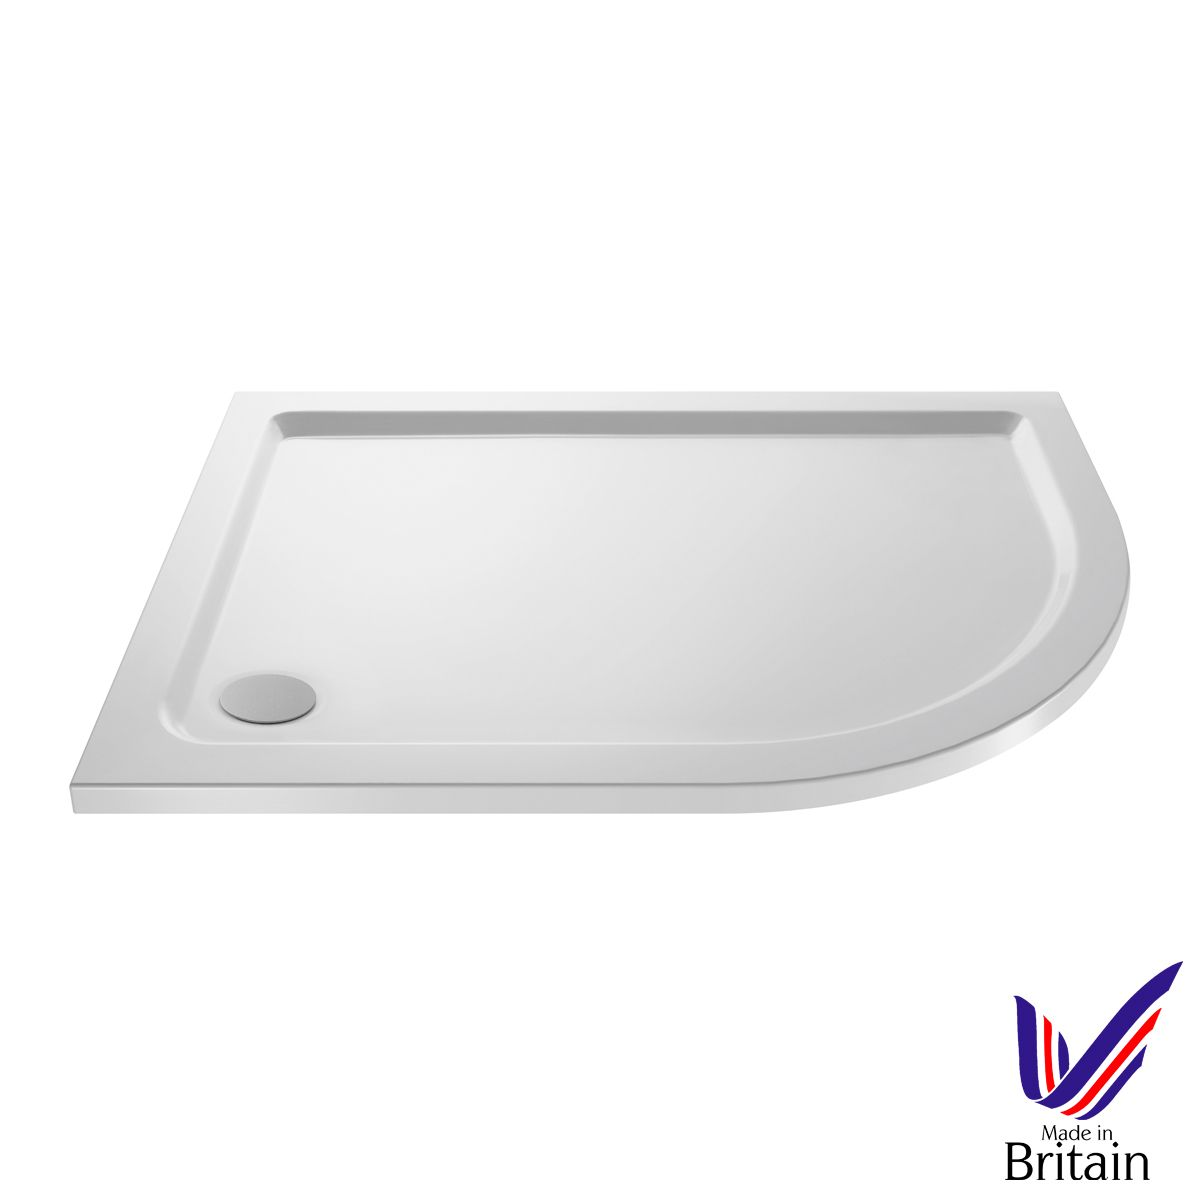 900 x 760 Shower Tray Offset Quadrant Low Profile Right Hand by Pearlstone